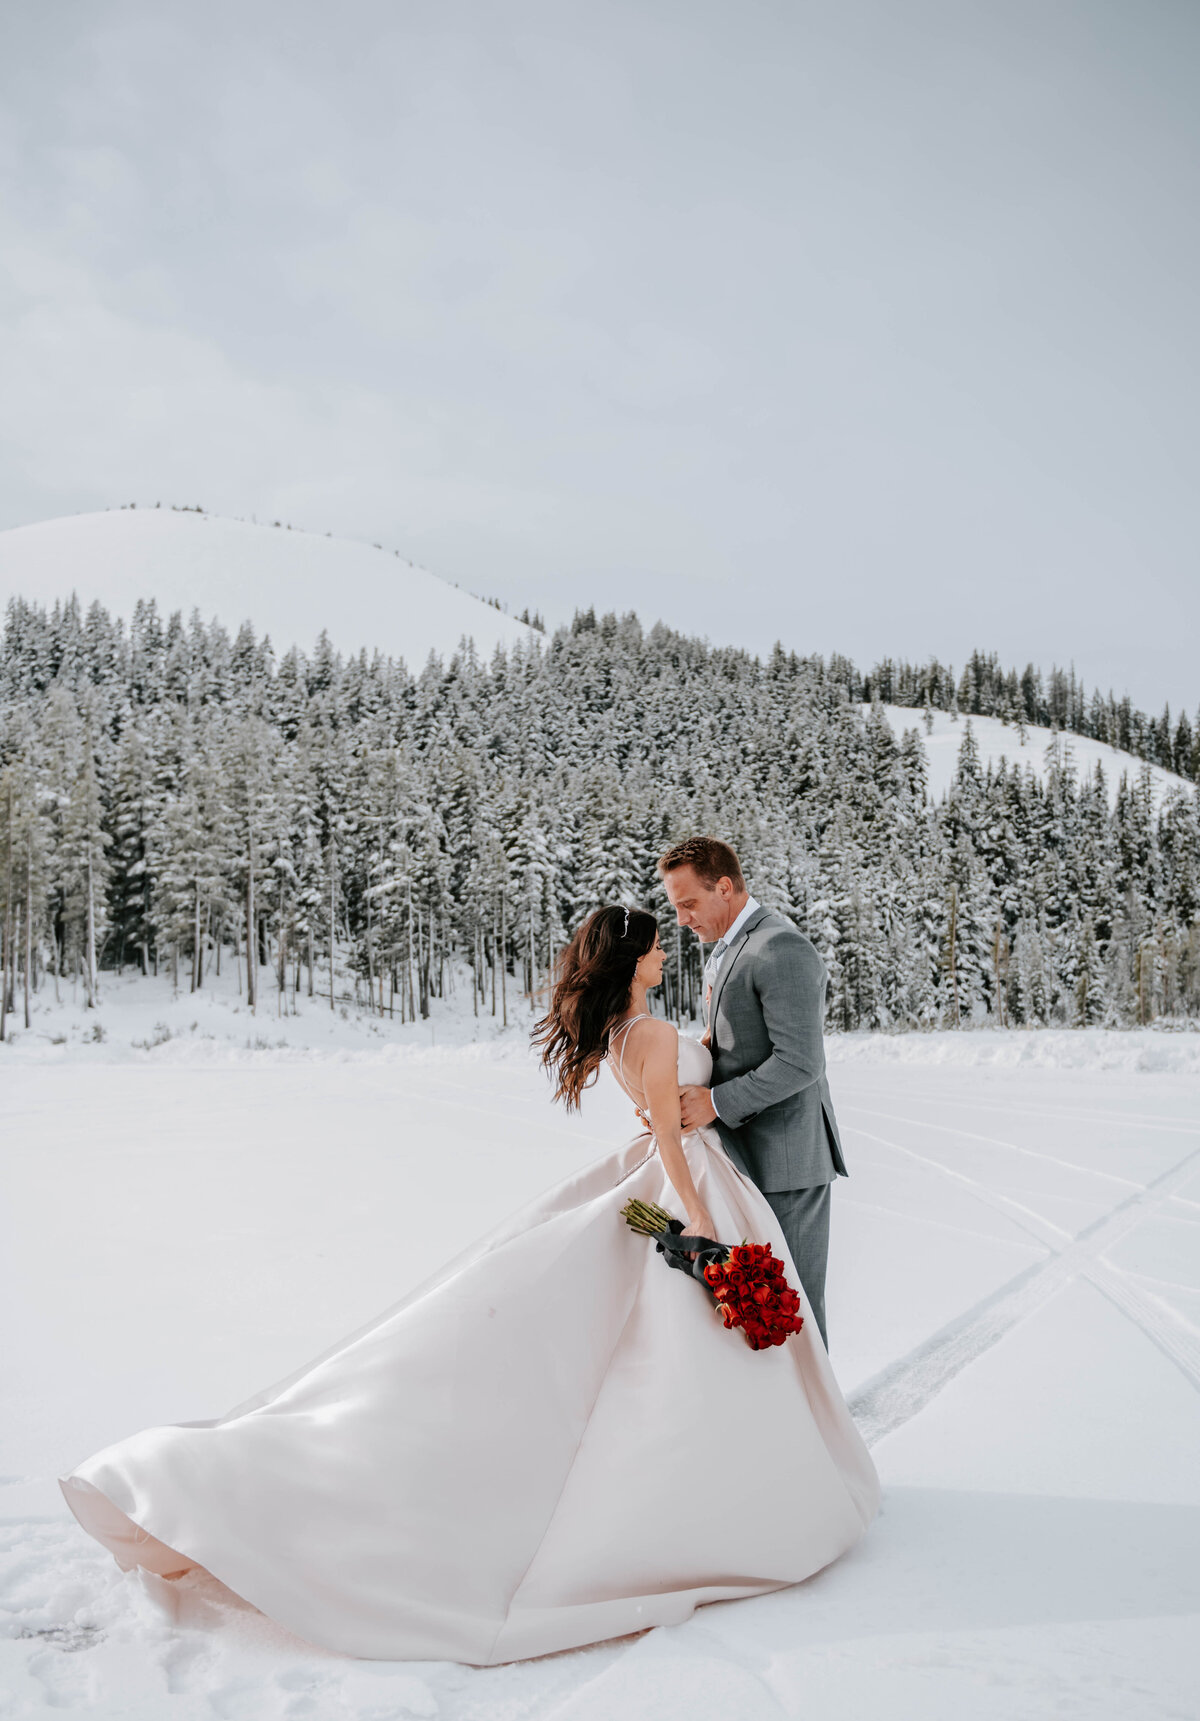 mt-bachelor-snow-winter-elopement-bend-oregon-wedding-photographer-2126